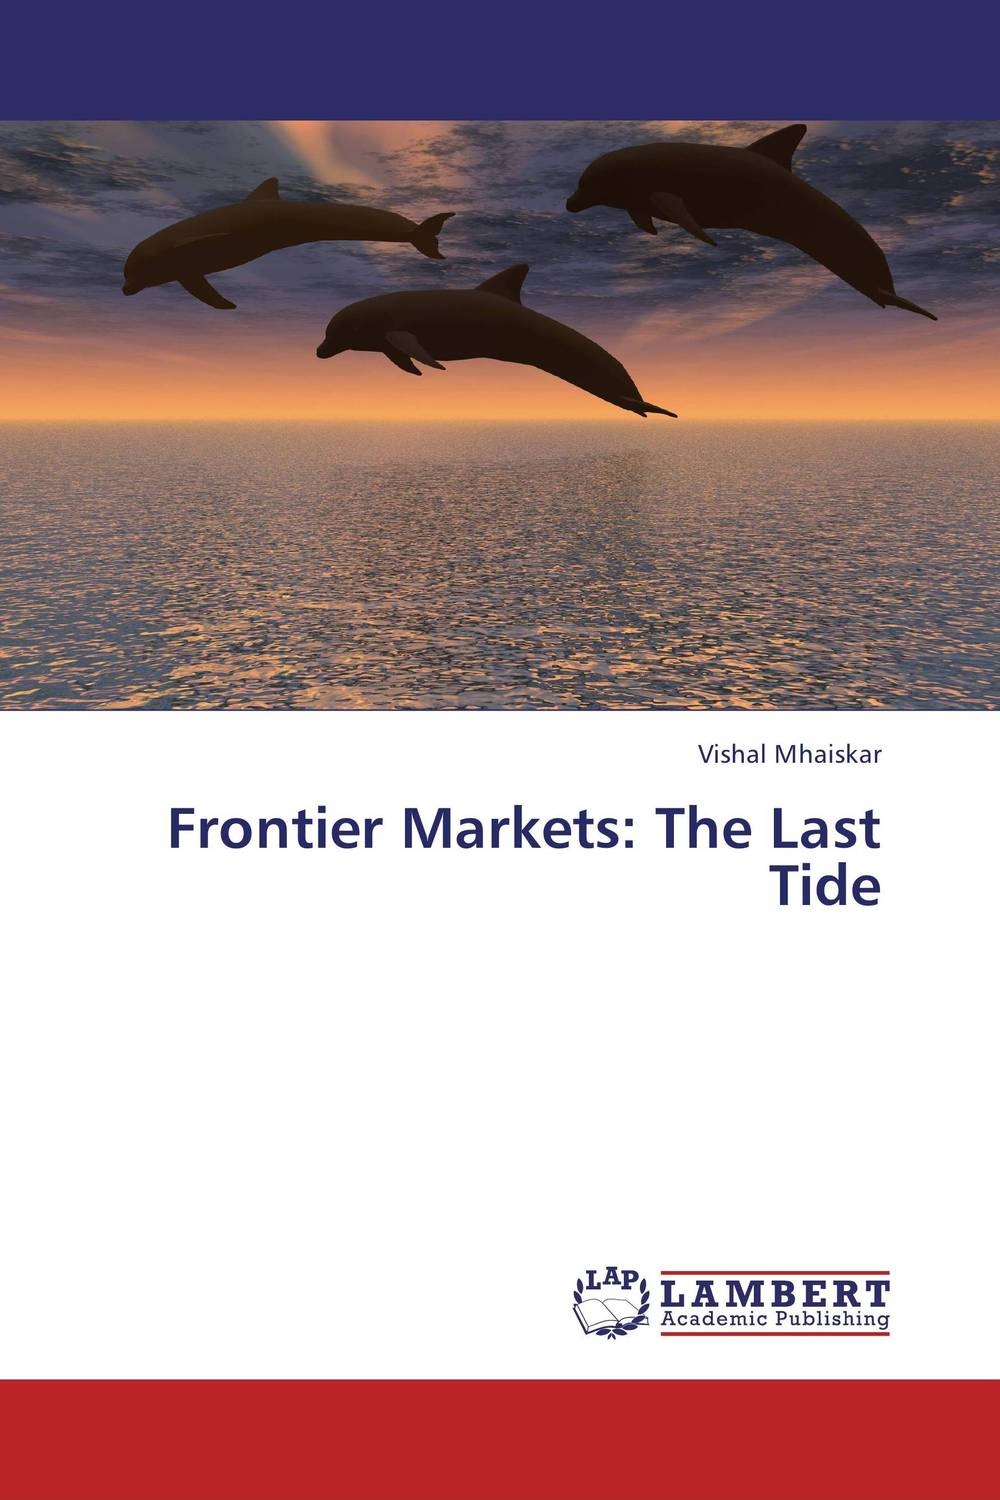 Frontier Markets: The Last Tide fisher investments fisher investments on emerging markets